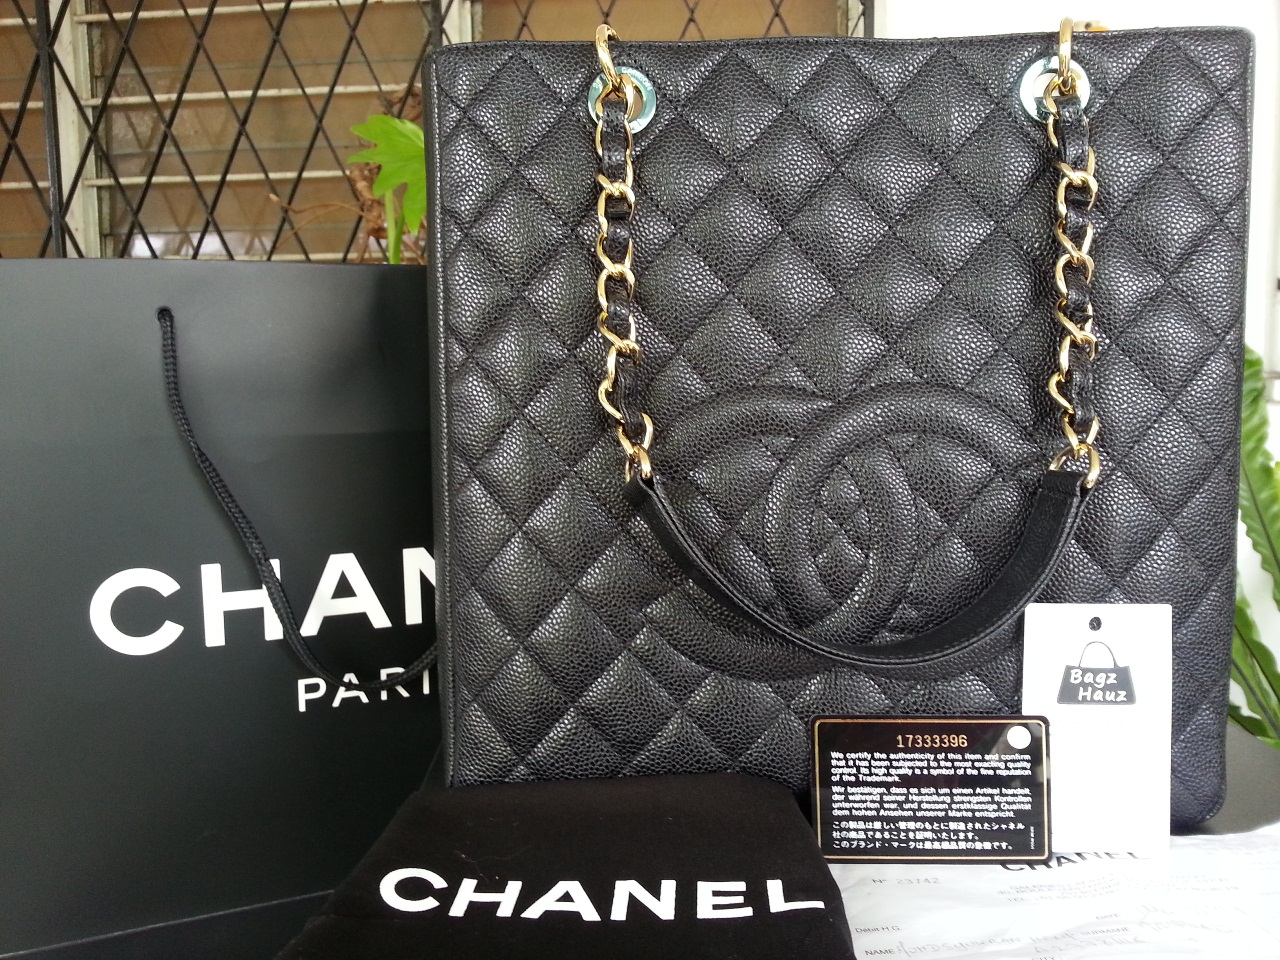 841d91d0a98cd6 Bagz Hauz Fashion: **SOLD** ~ CHANEL PST XL in Black caviar with GHW